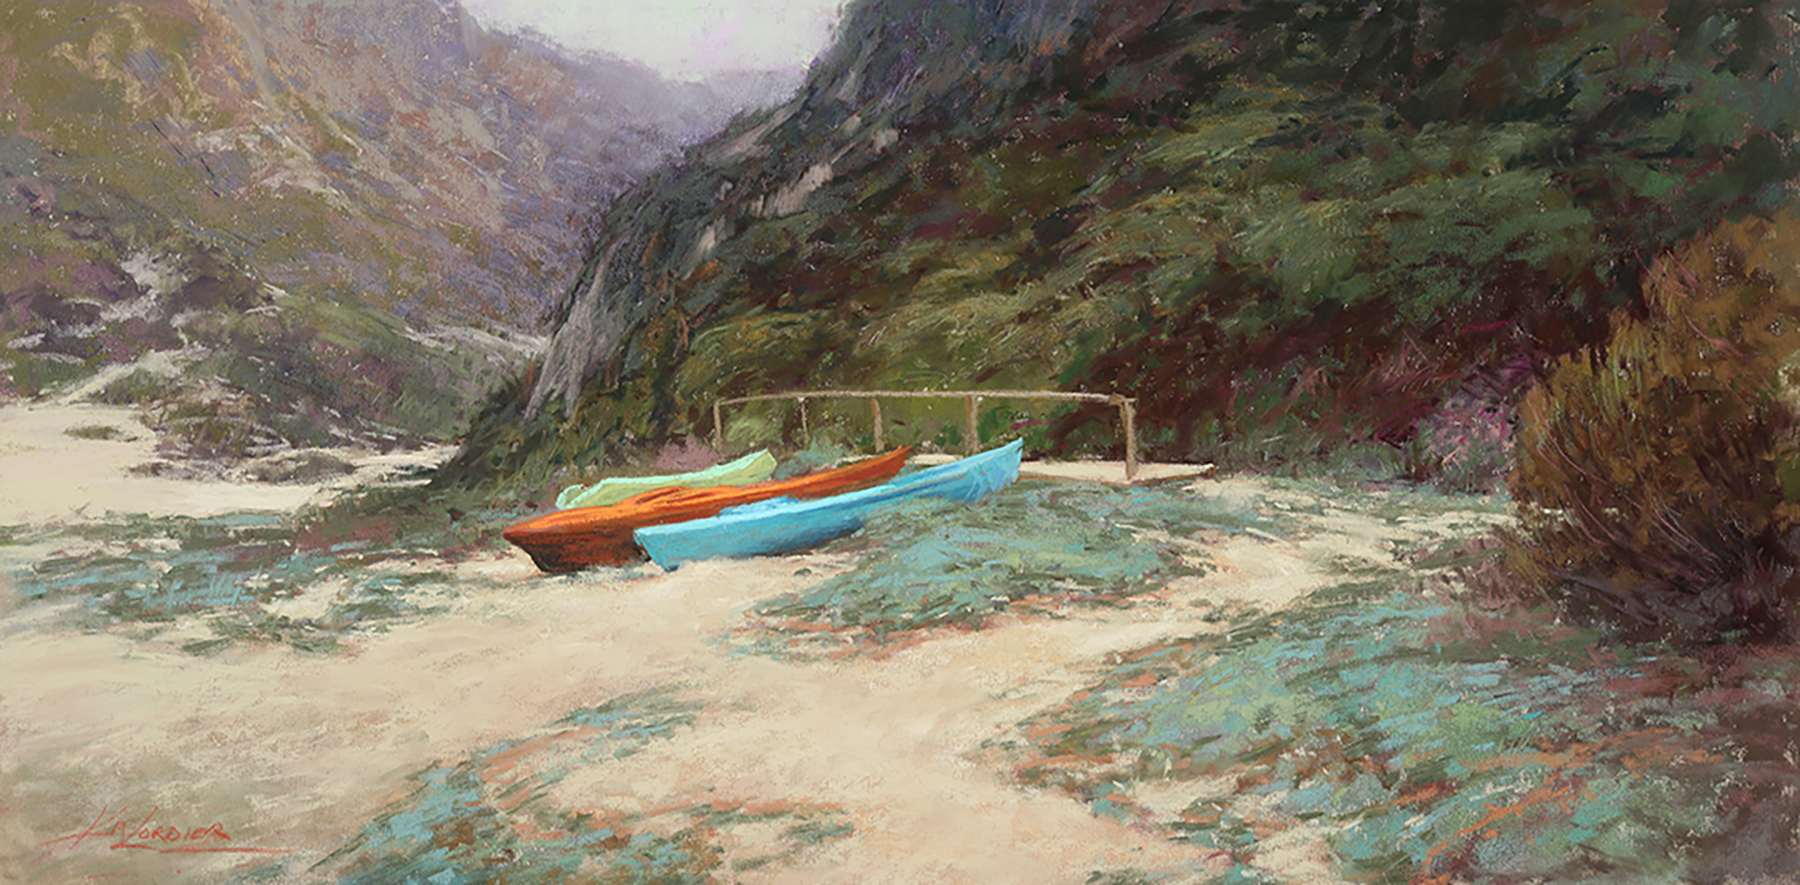 Two colorful canoes waiting in the sand on the coast.